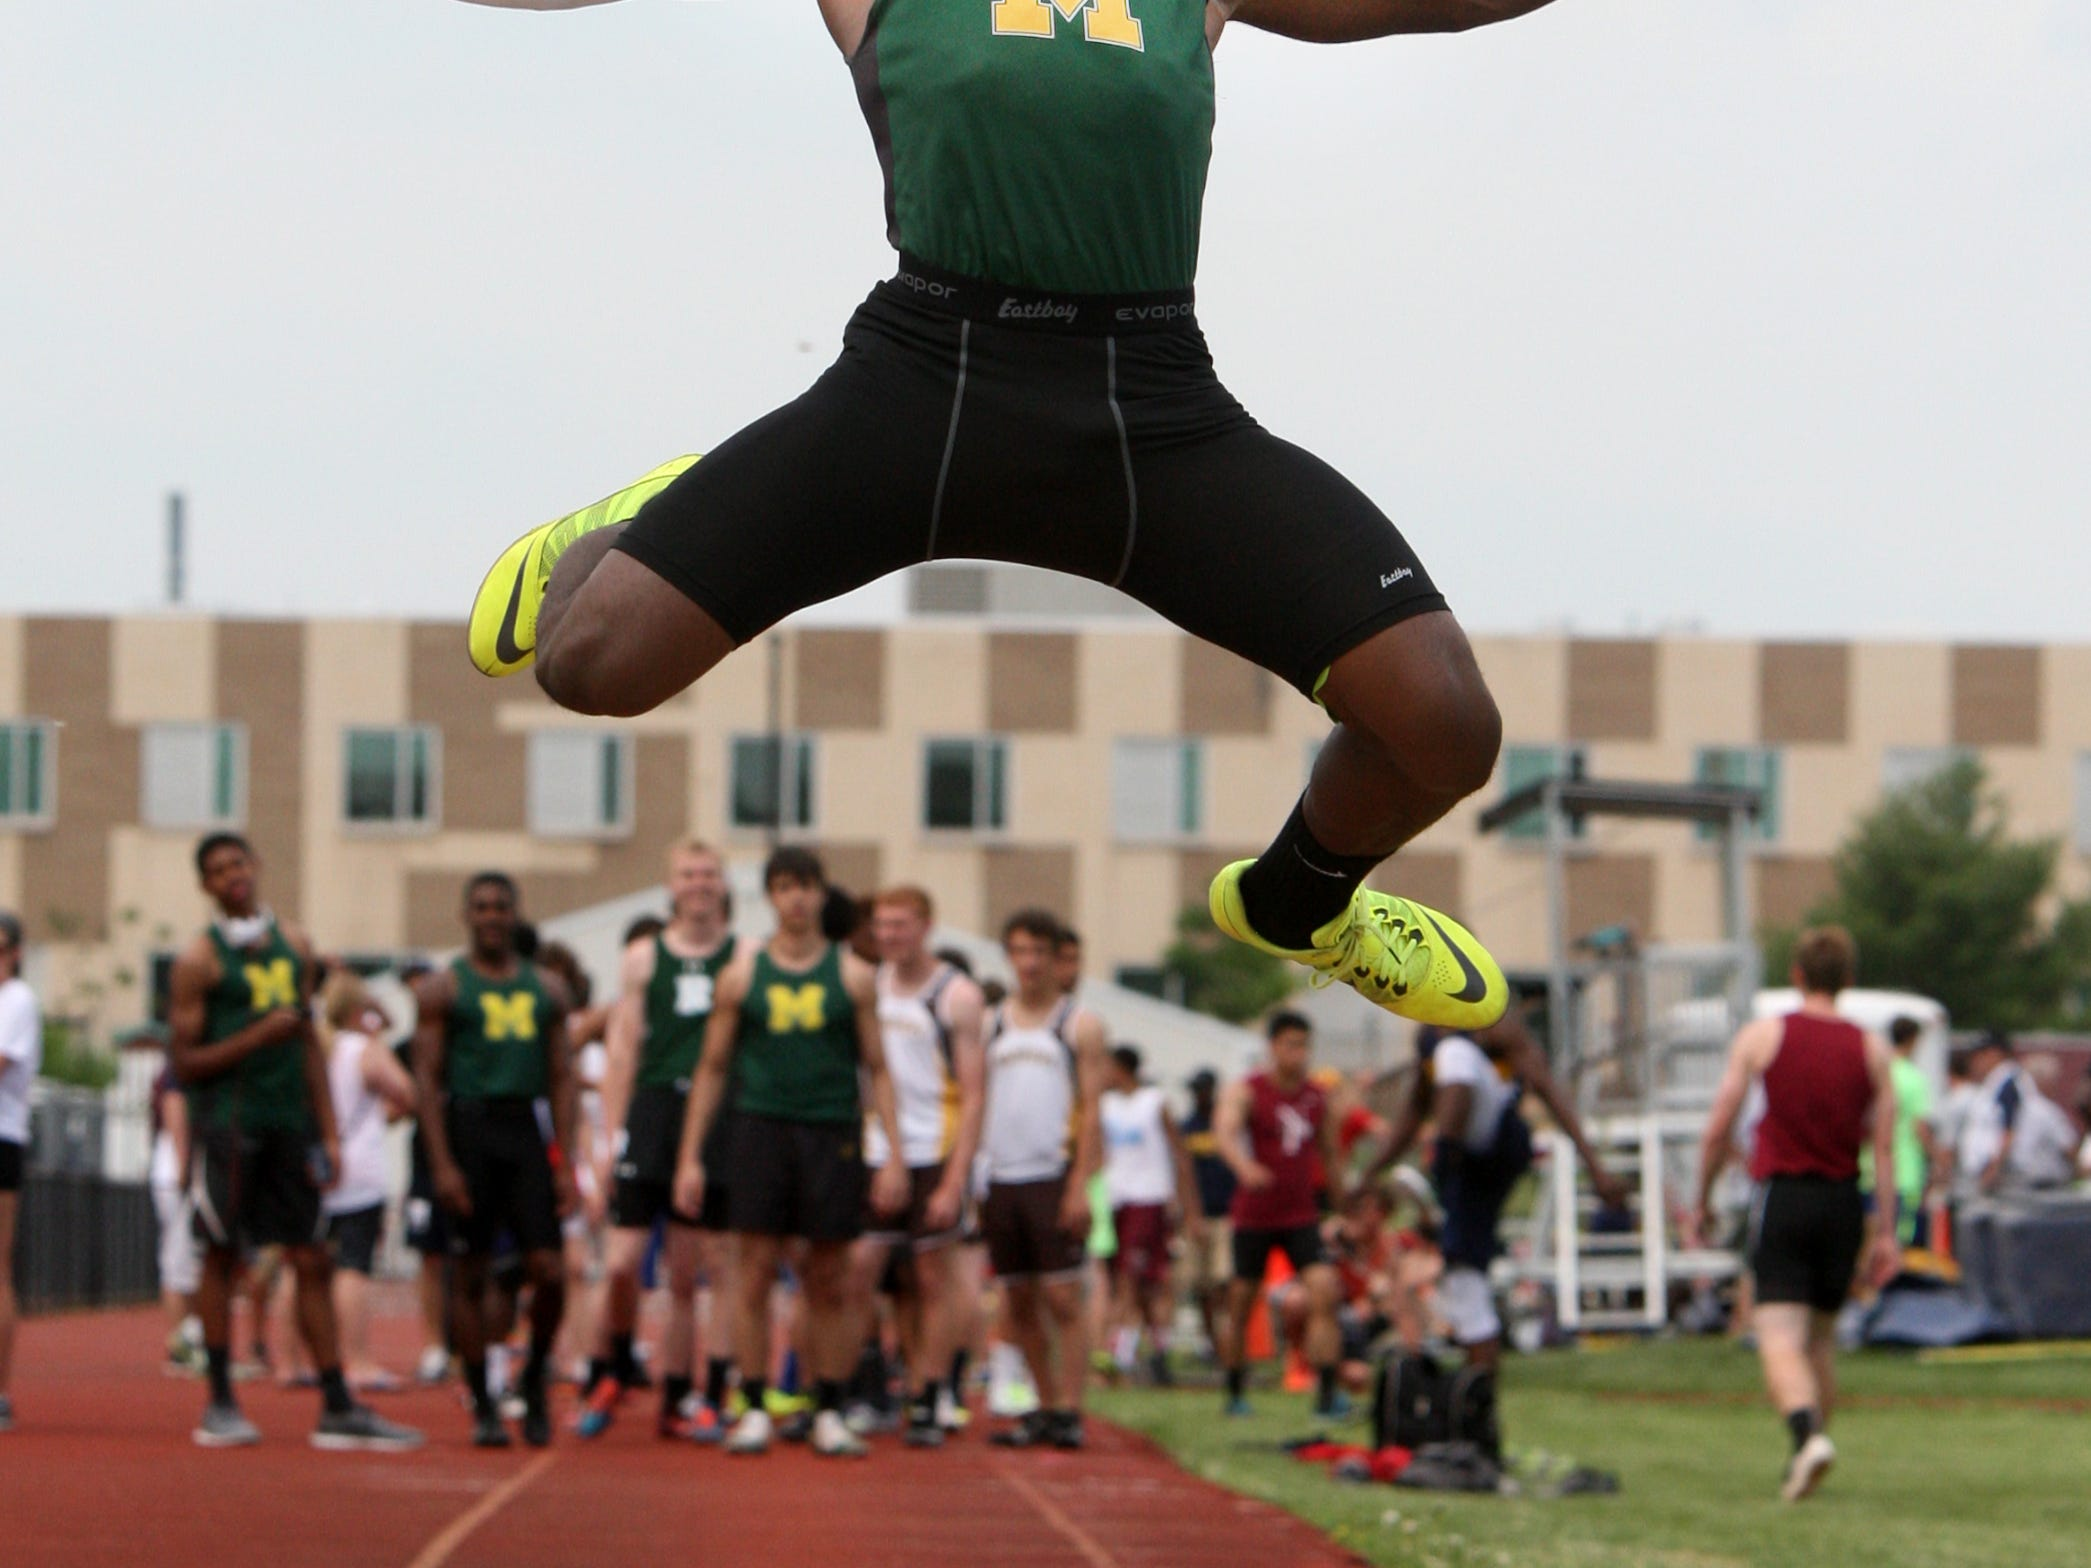 The 2015 Somerset County Track and Field Championships held at Hillsborough High School on Tuesday May 12,2015. Montgomery's Patrick Warren competes during the Boys Long Jump.